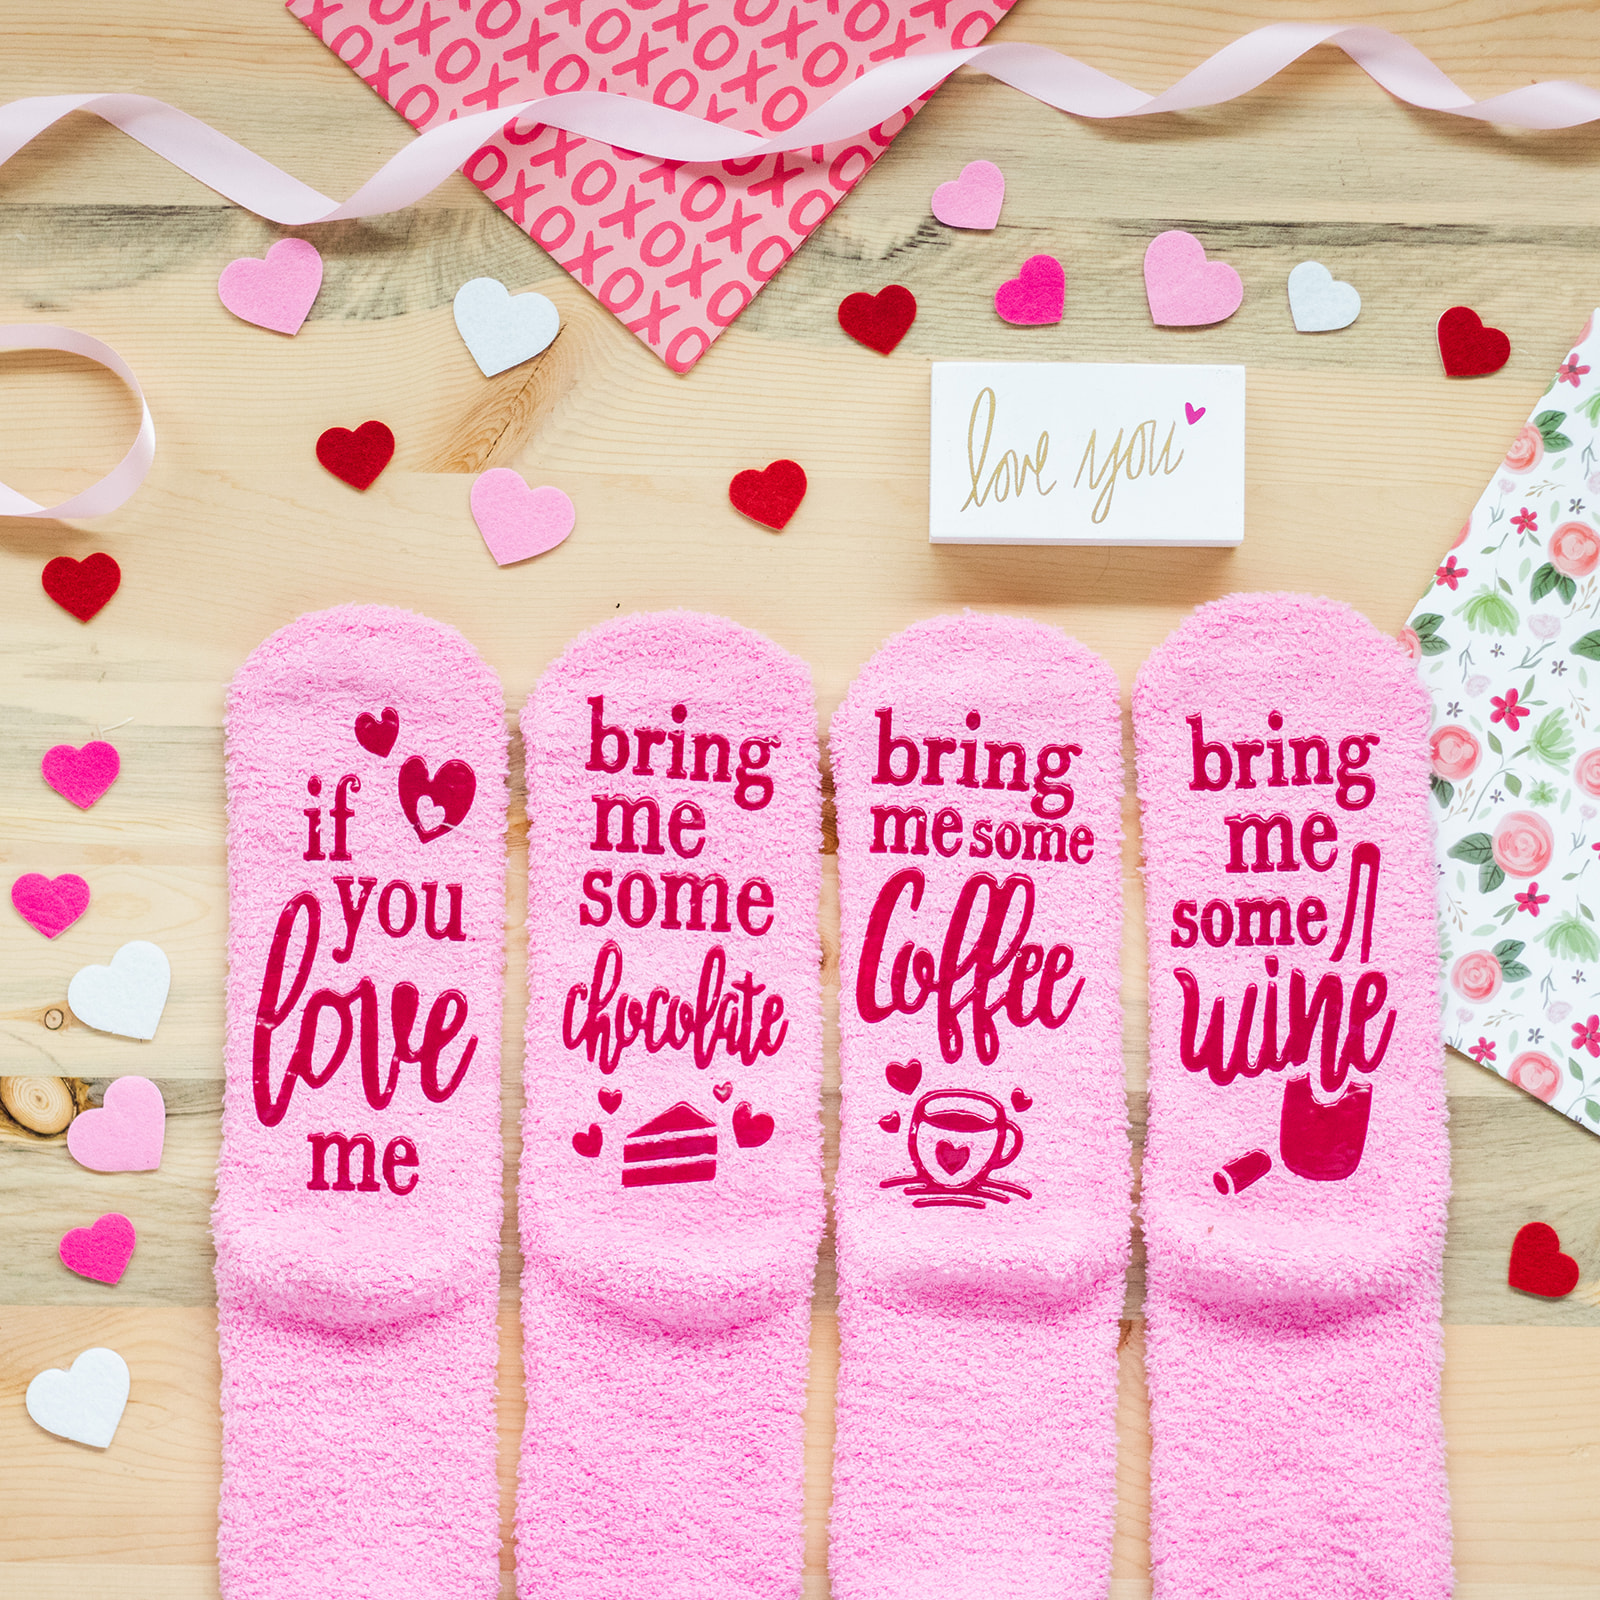 if you love me, bring me some chocolate socks